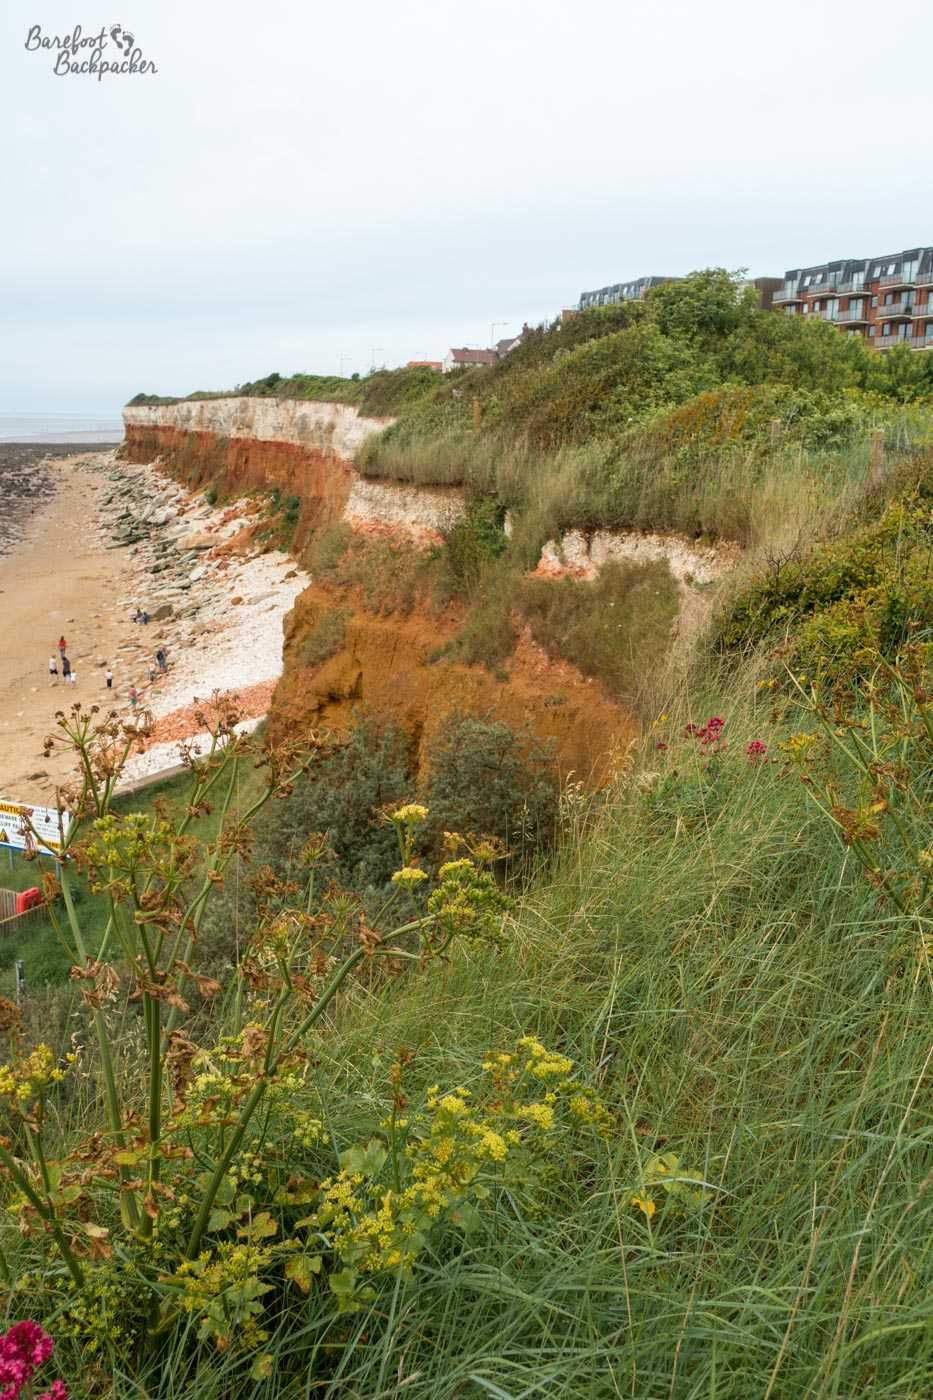 A cliff with rock in several colours disappears into the distance. The rock is sort of red/green at the bottom, orange in the middle, and white at the top. This contrasts well with the yellow sand to the left and the green grass on the cliff edge on the right.